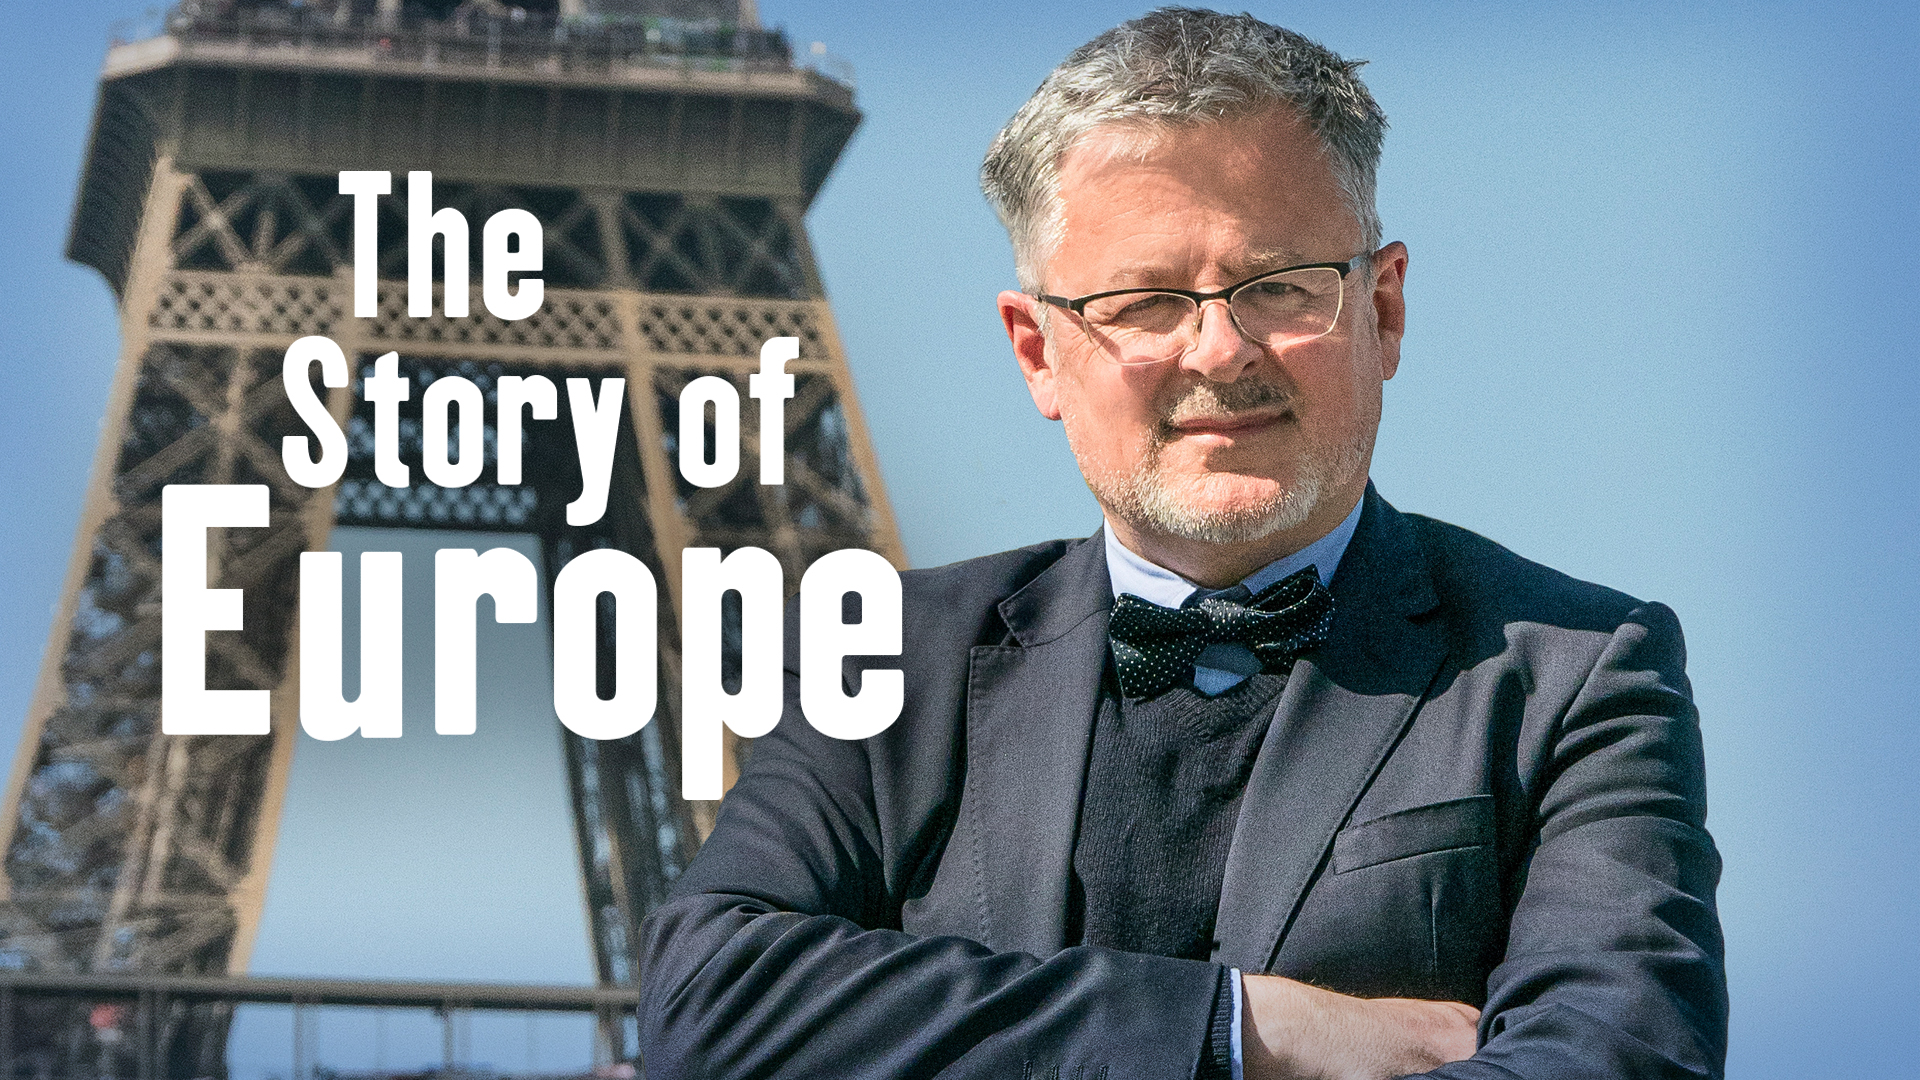 The Story of Europe